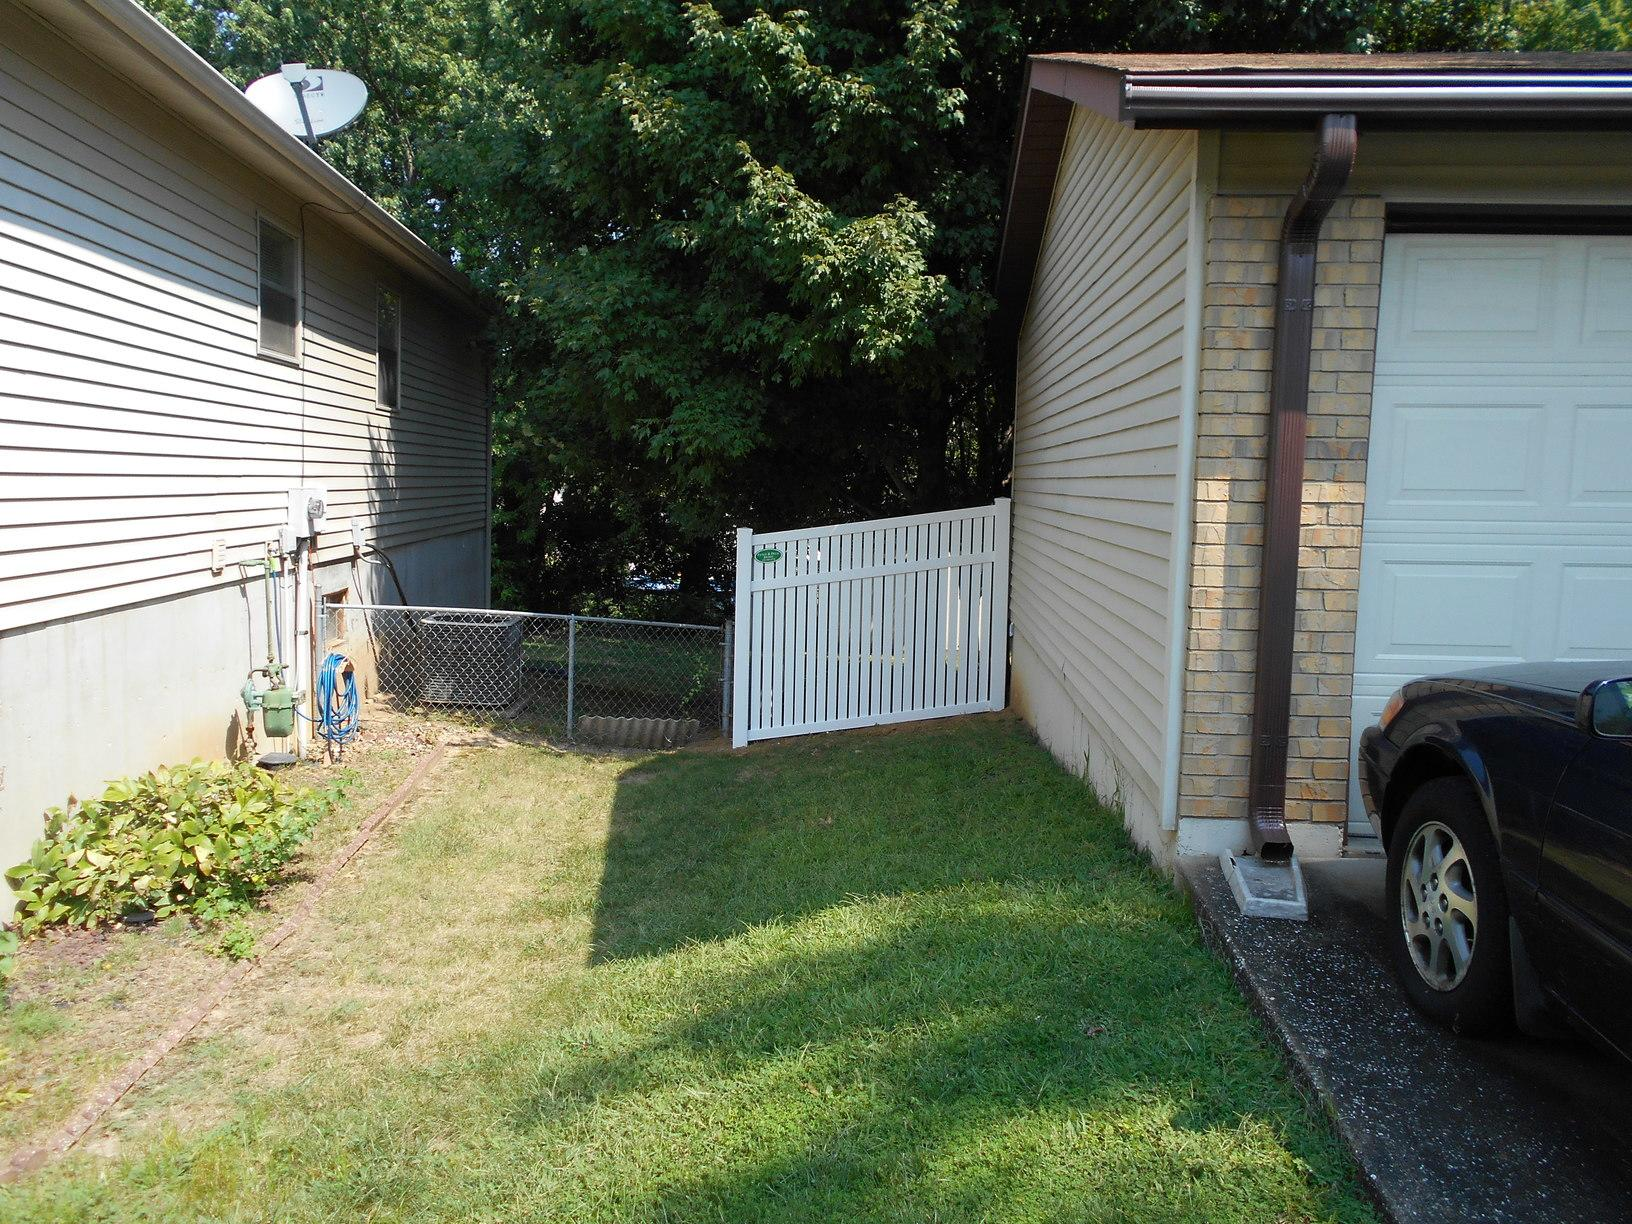 St Peters, MO Vinyl Privacy Fencing Installation - After Photo